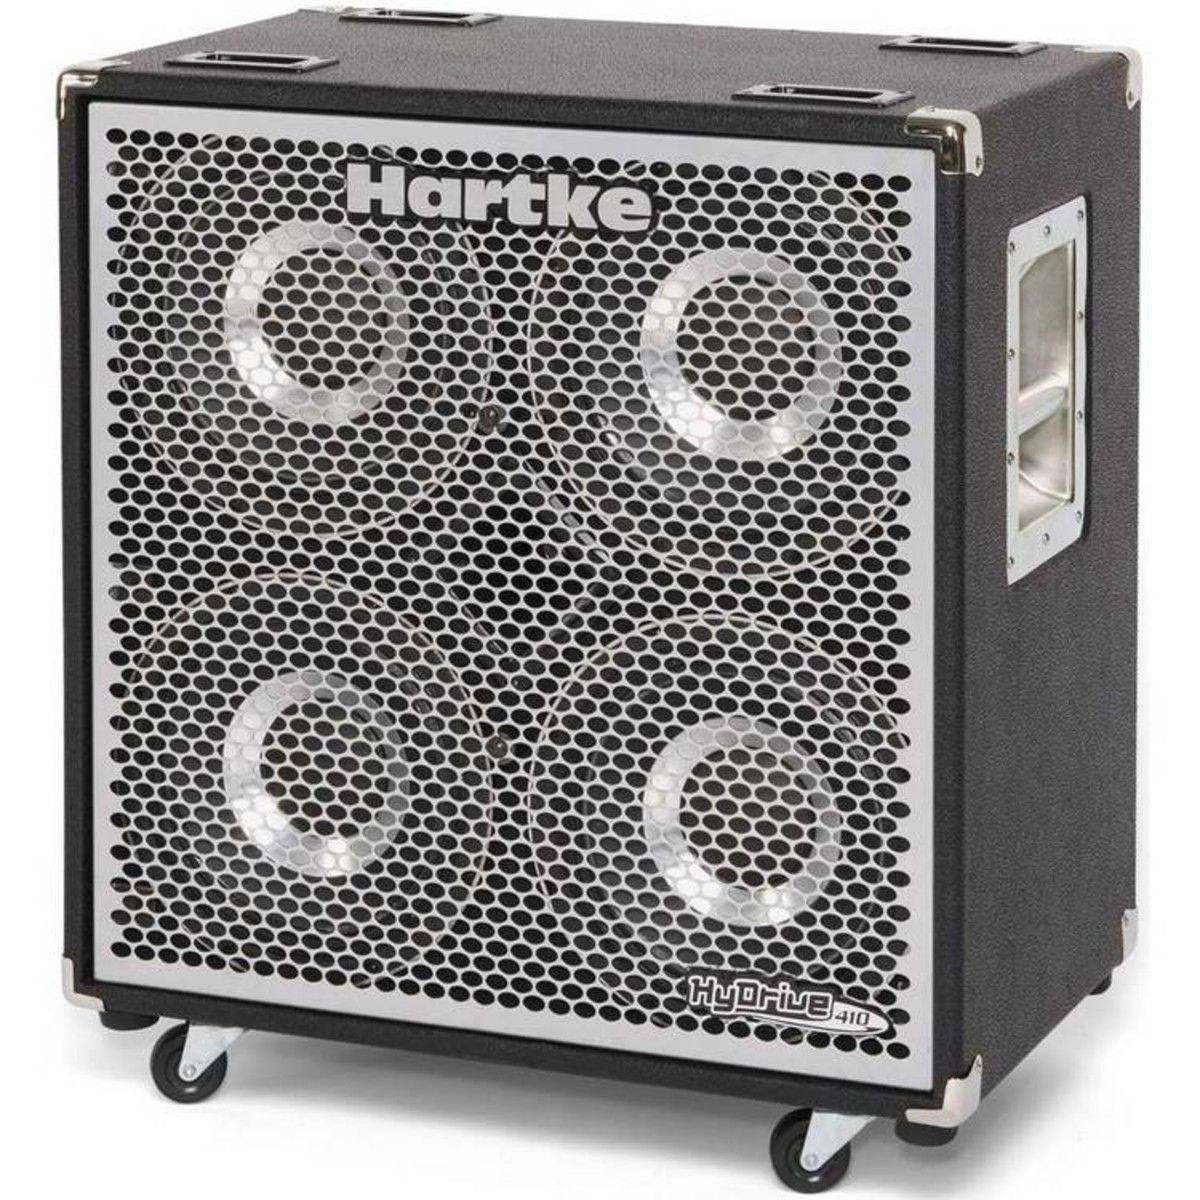 hartke hydrive 4x10 hoes